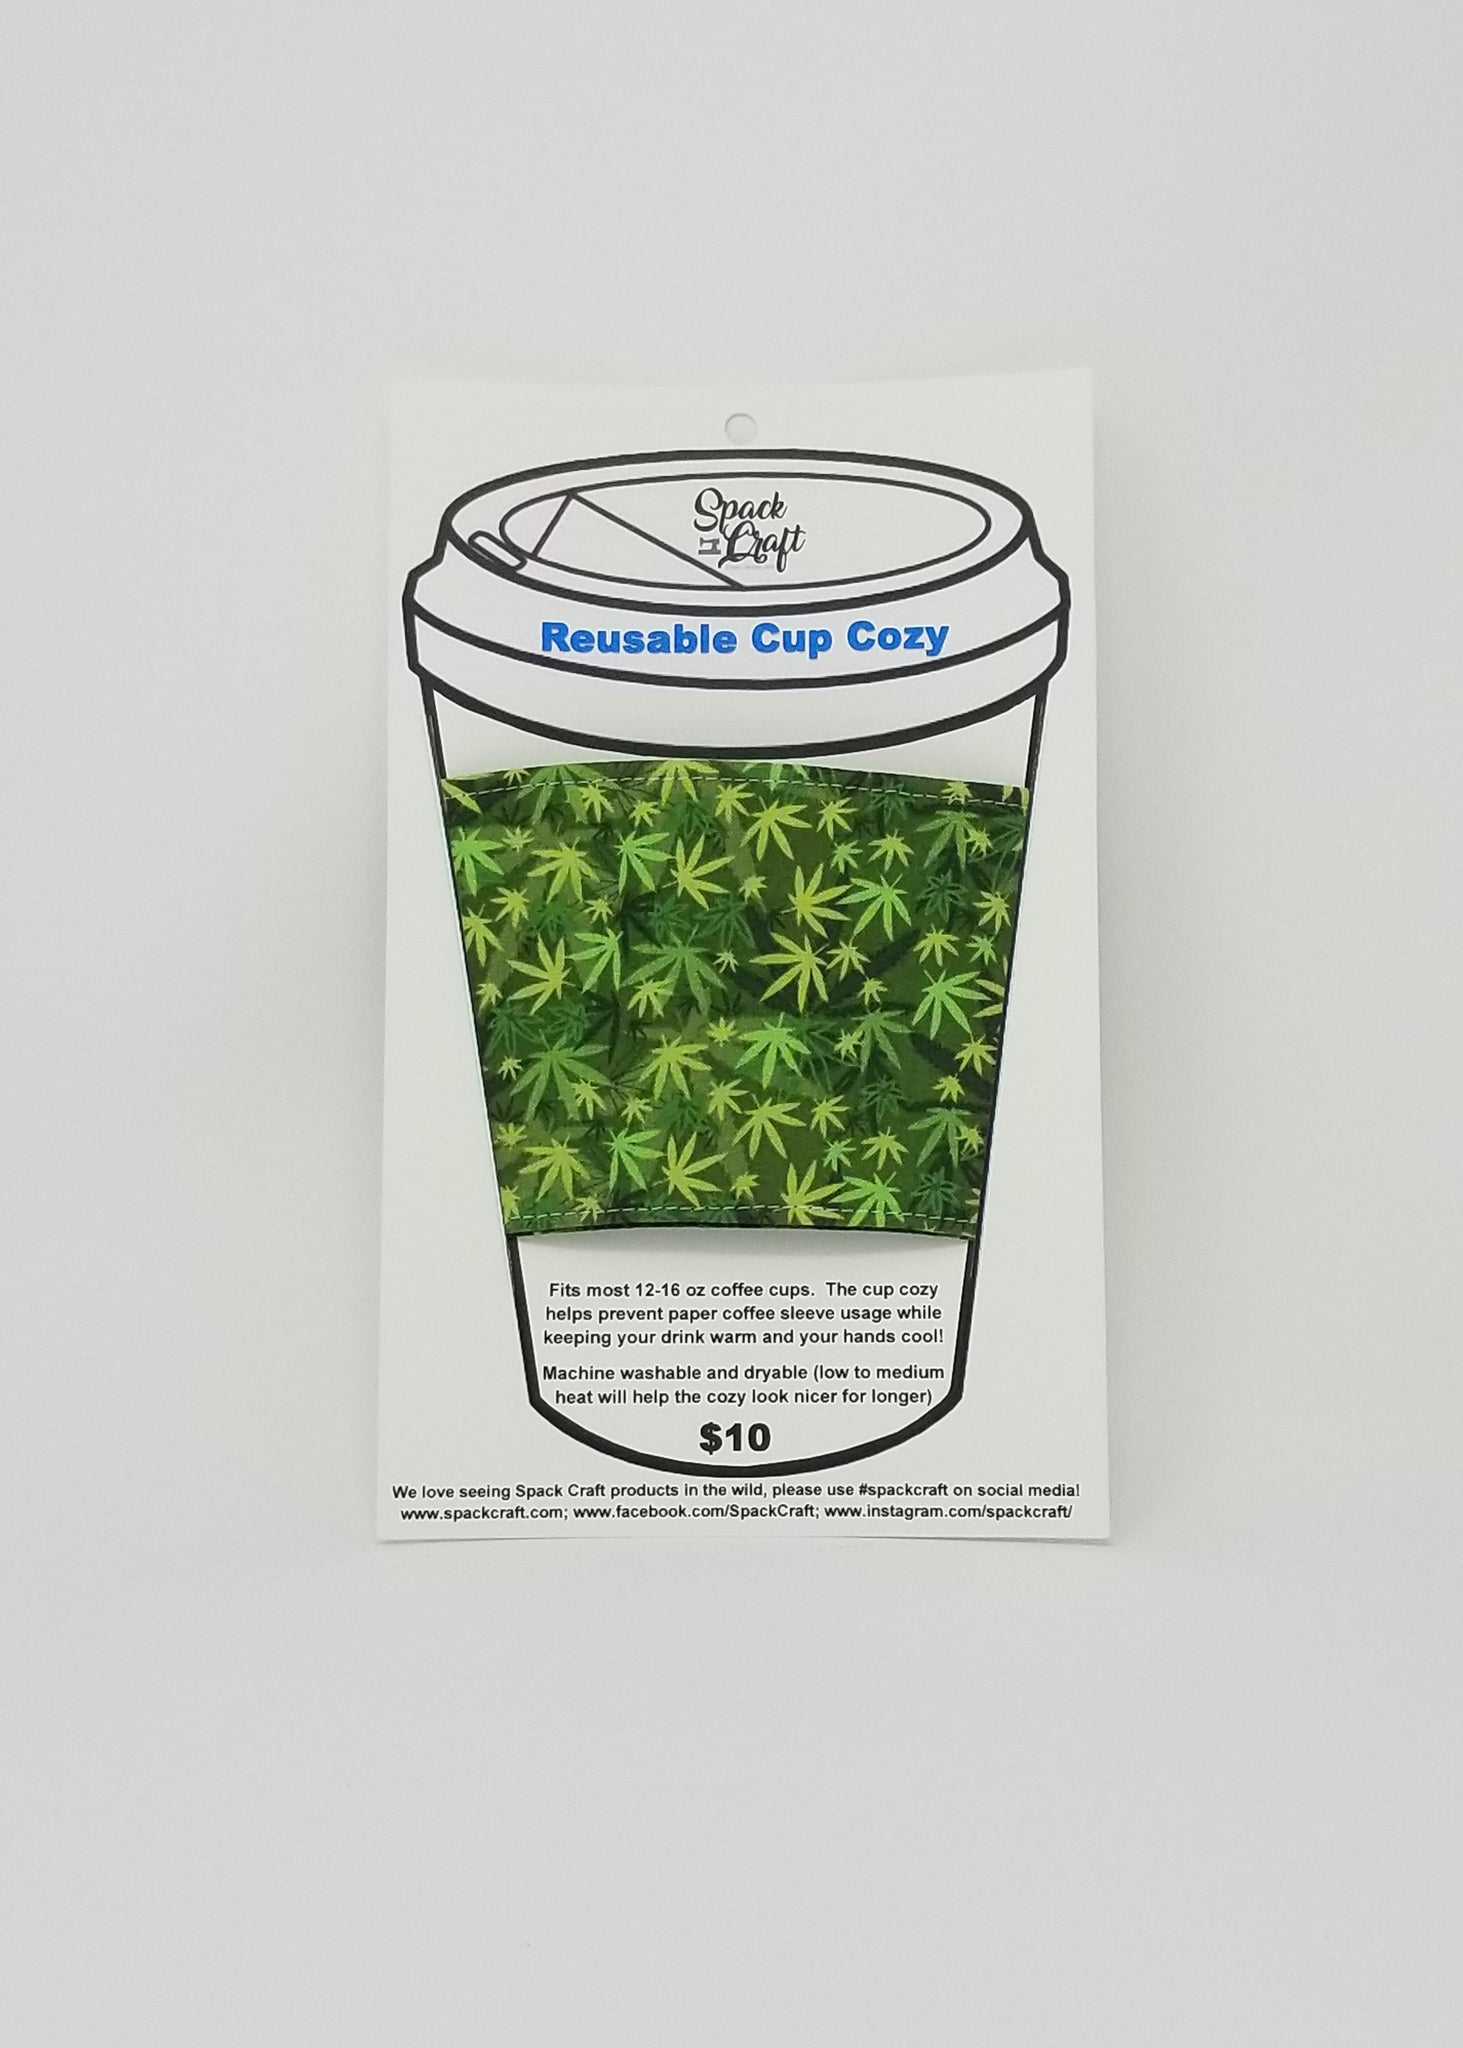 Reusable cup cozy in packaging - Cannabis